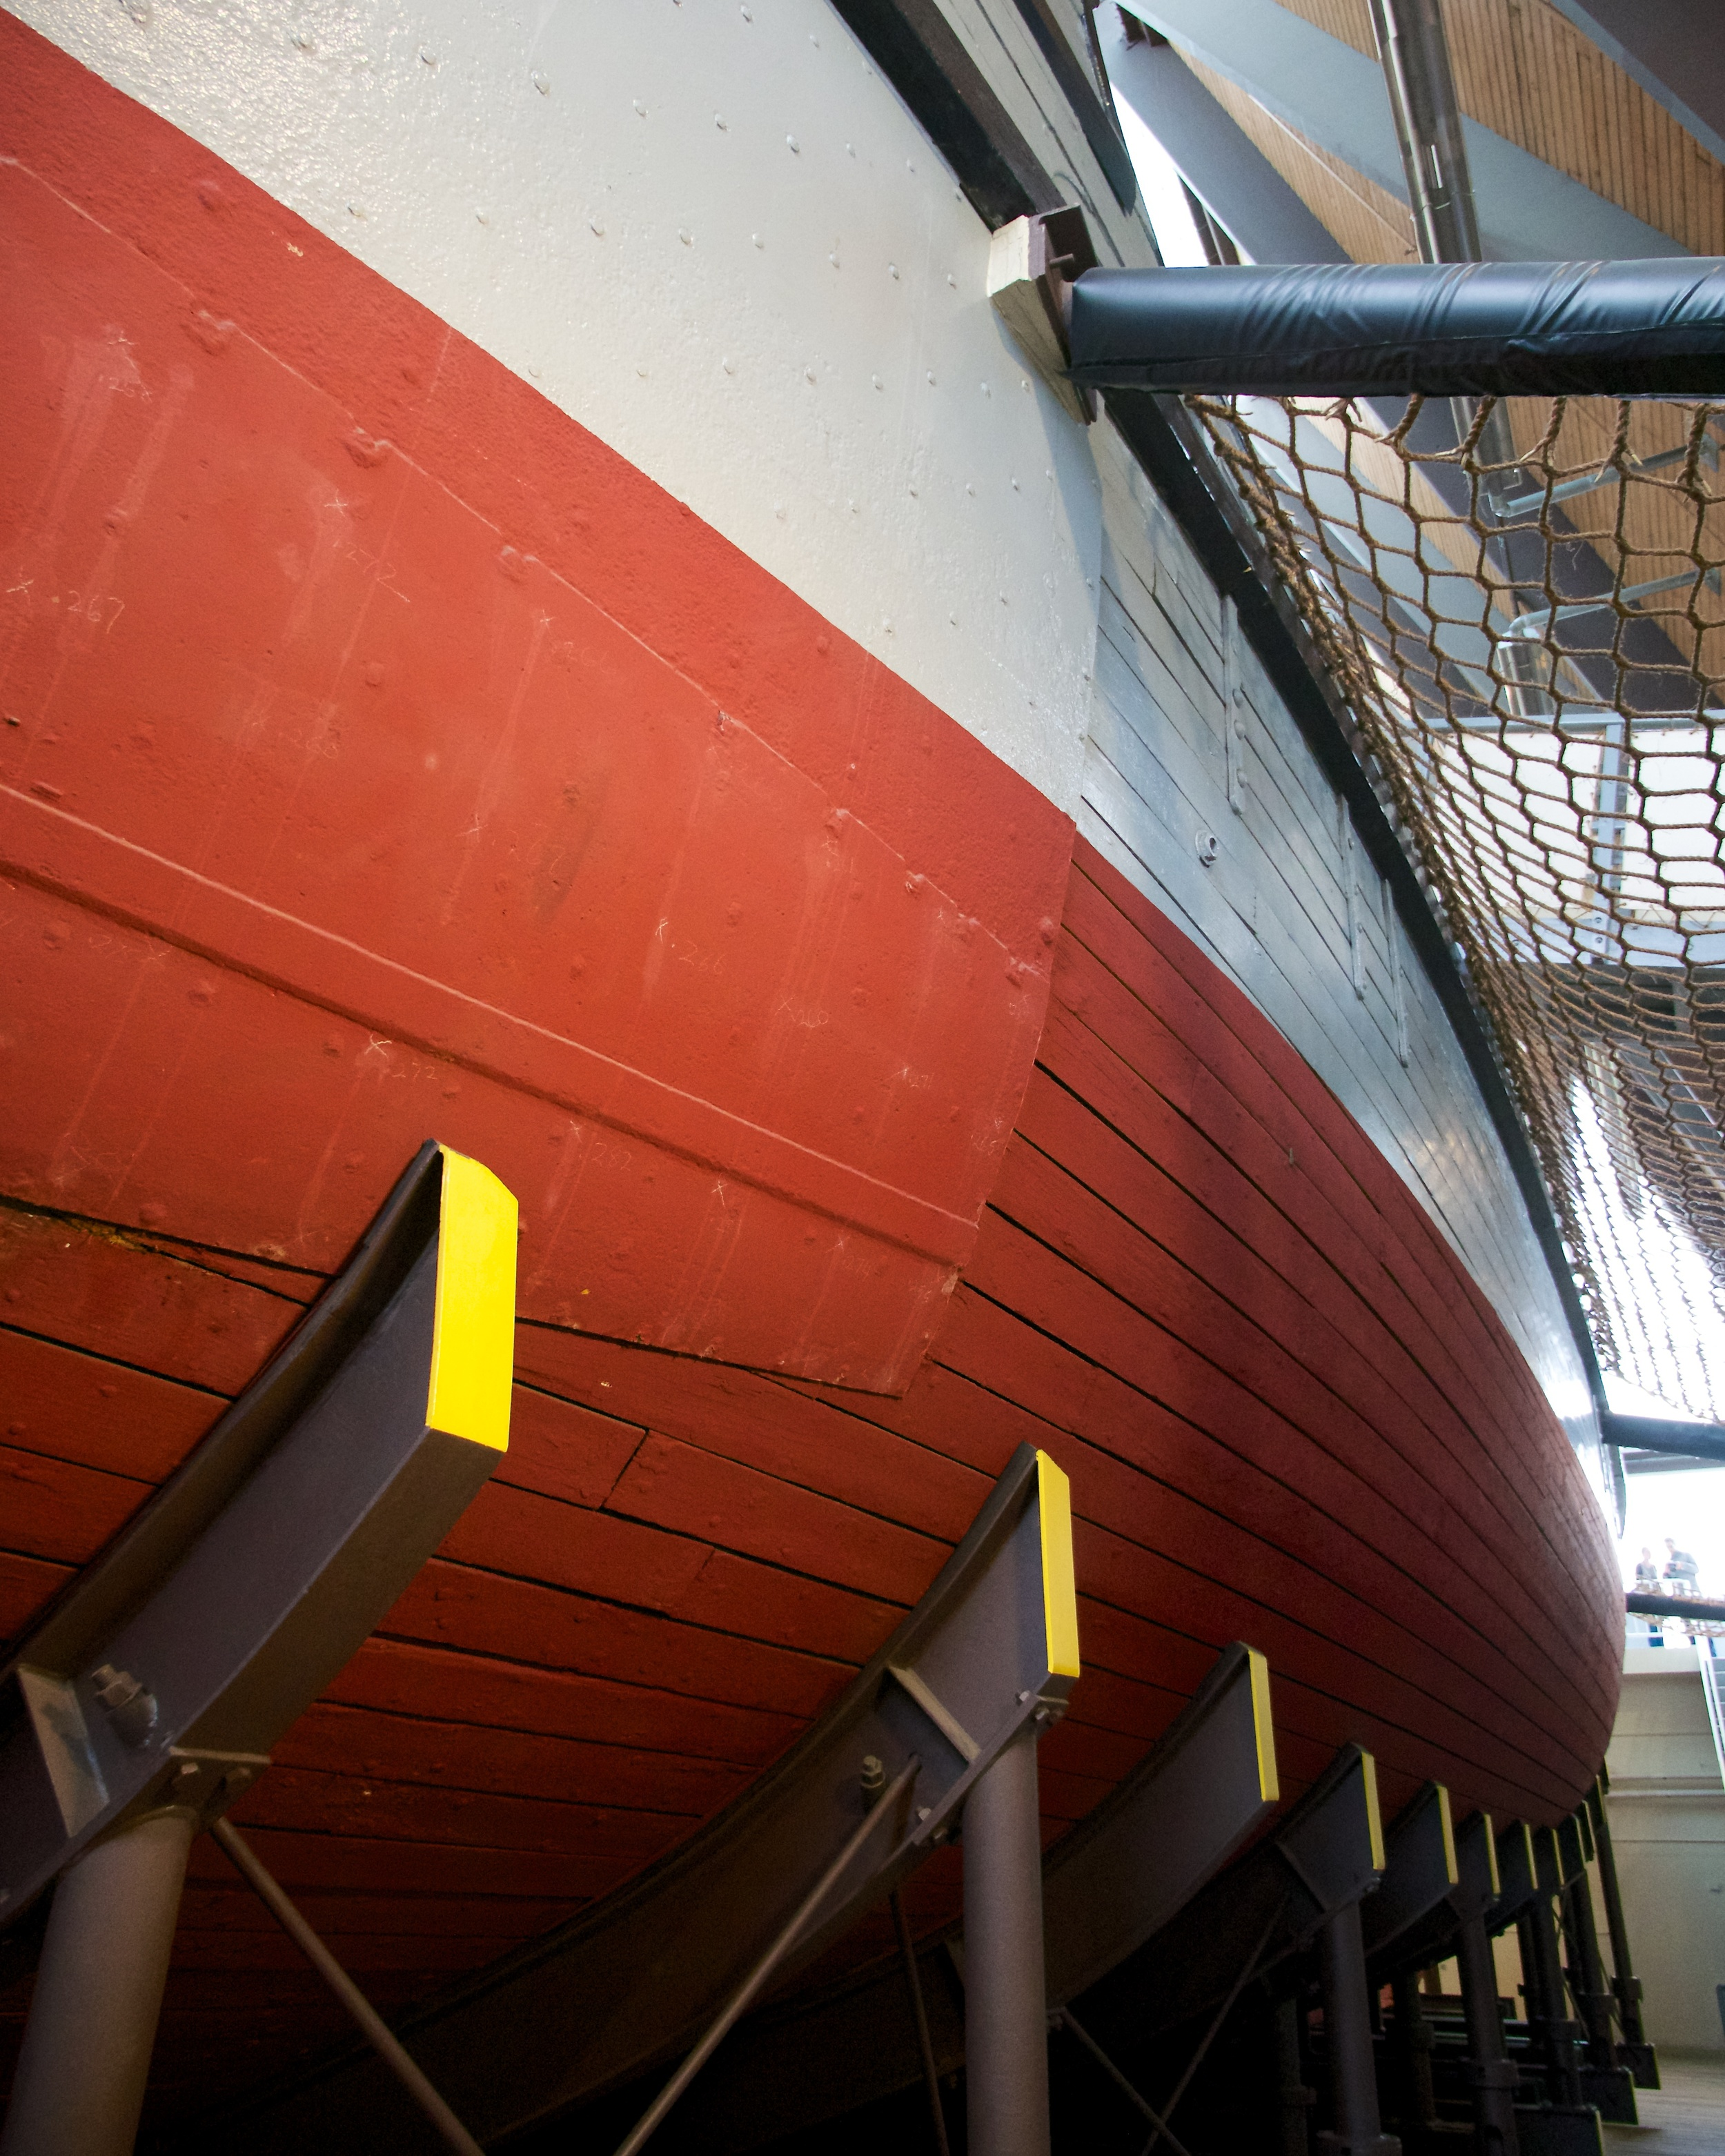 Hull of the RCMP St. Roch